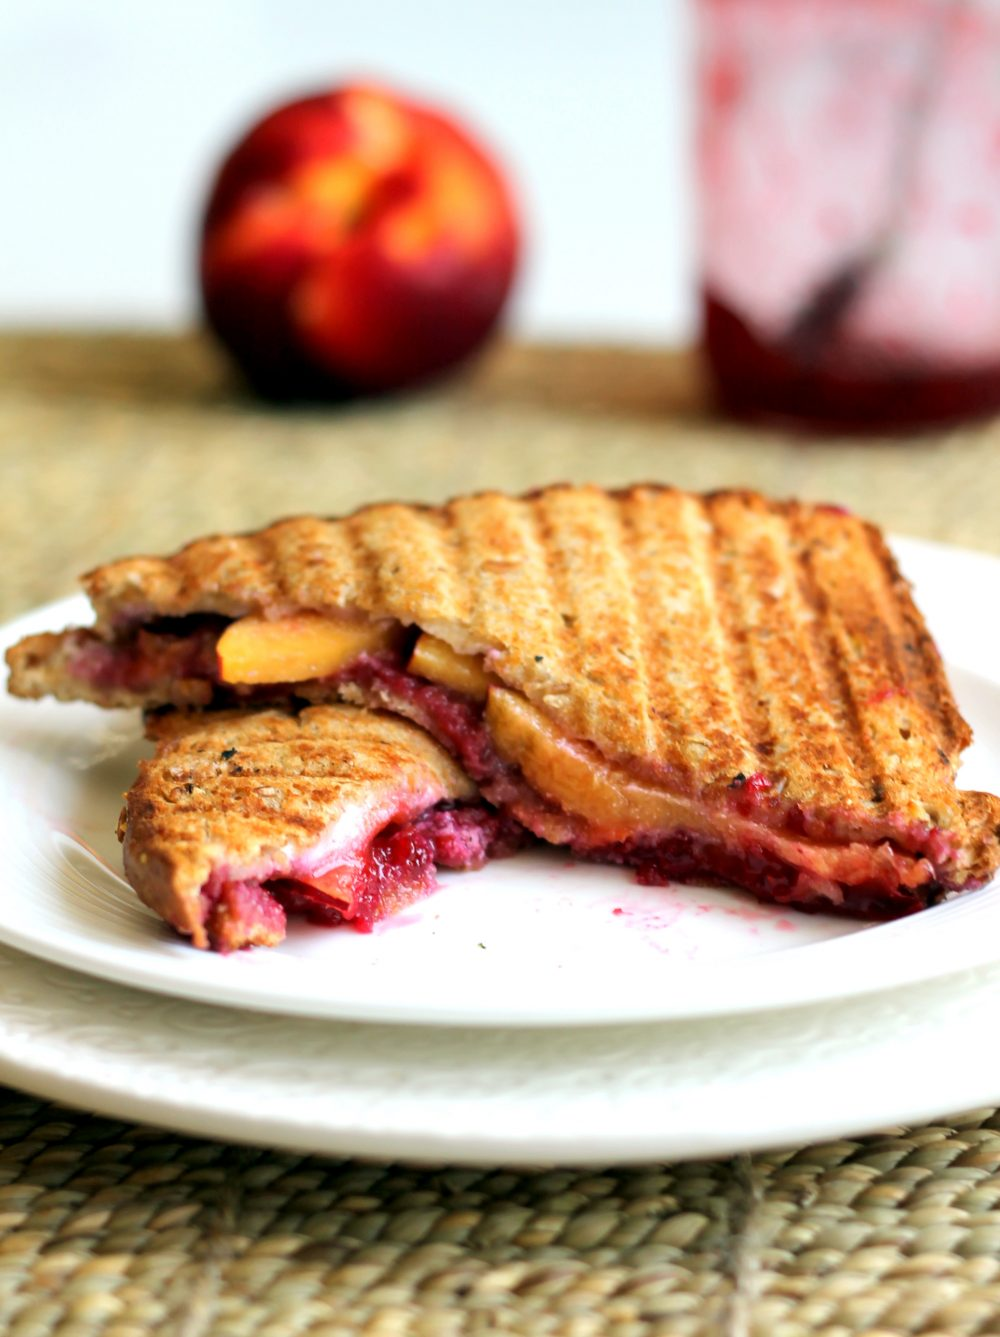 Sweet & savory grilled goat cheese sandwiches grilled to perfection with fresh peaches and raspberry jam in every bite. The ultimate grown up grilled cheese with ingredients you can feel good about.